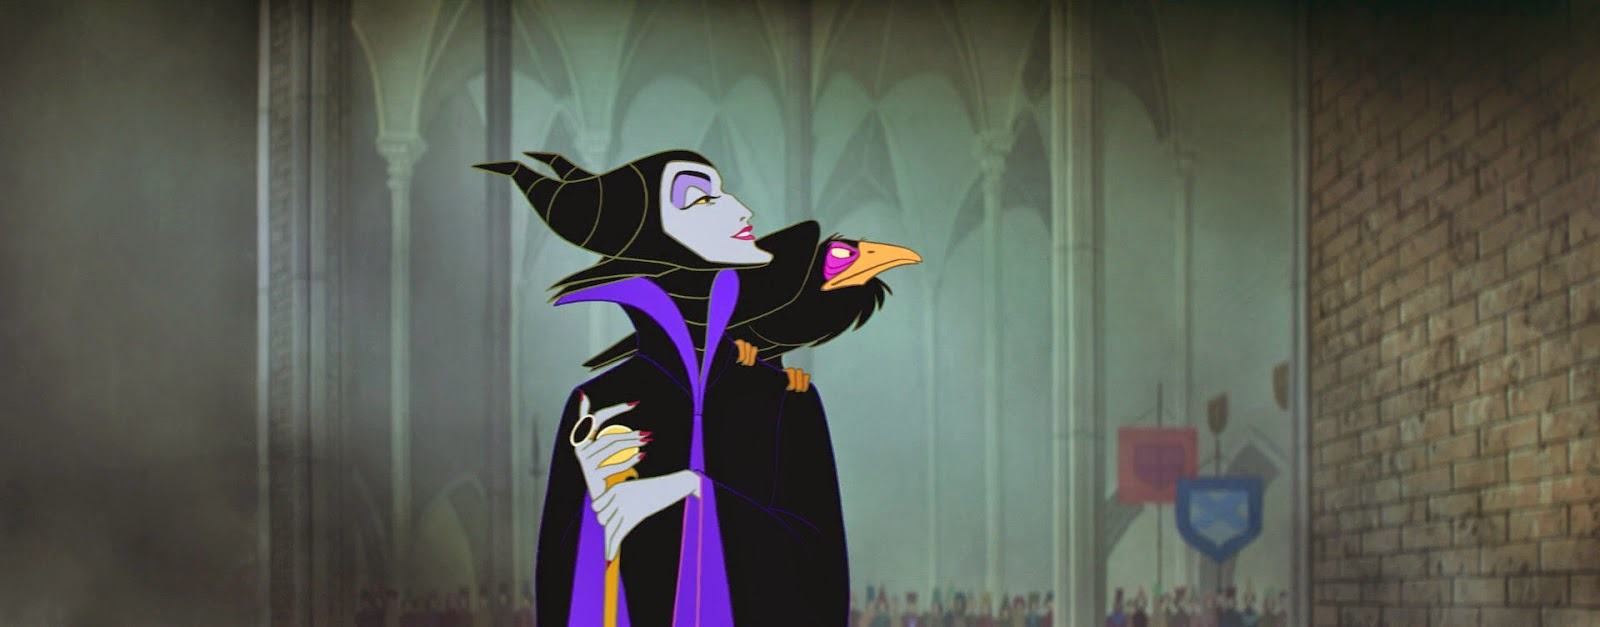 Sleeping-beauty-disneyscreencaps.com-765